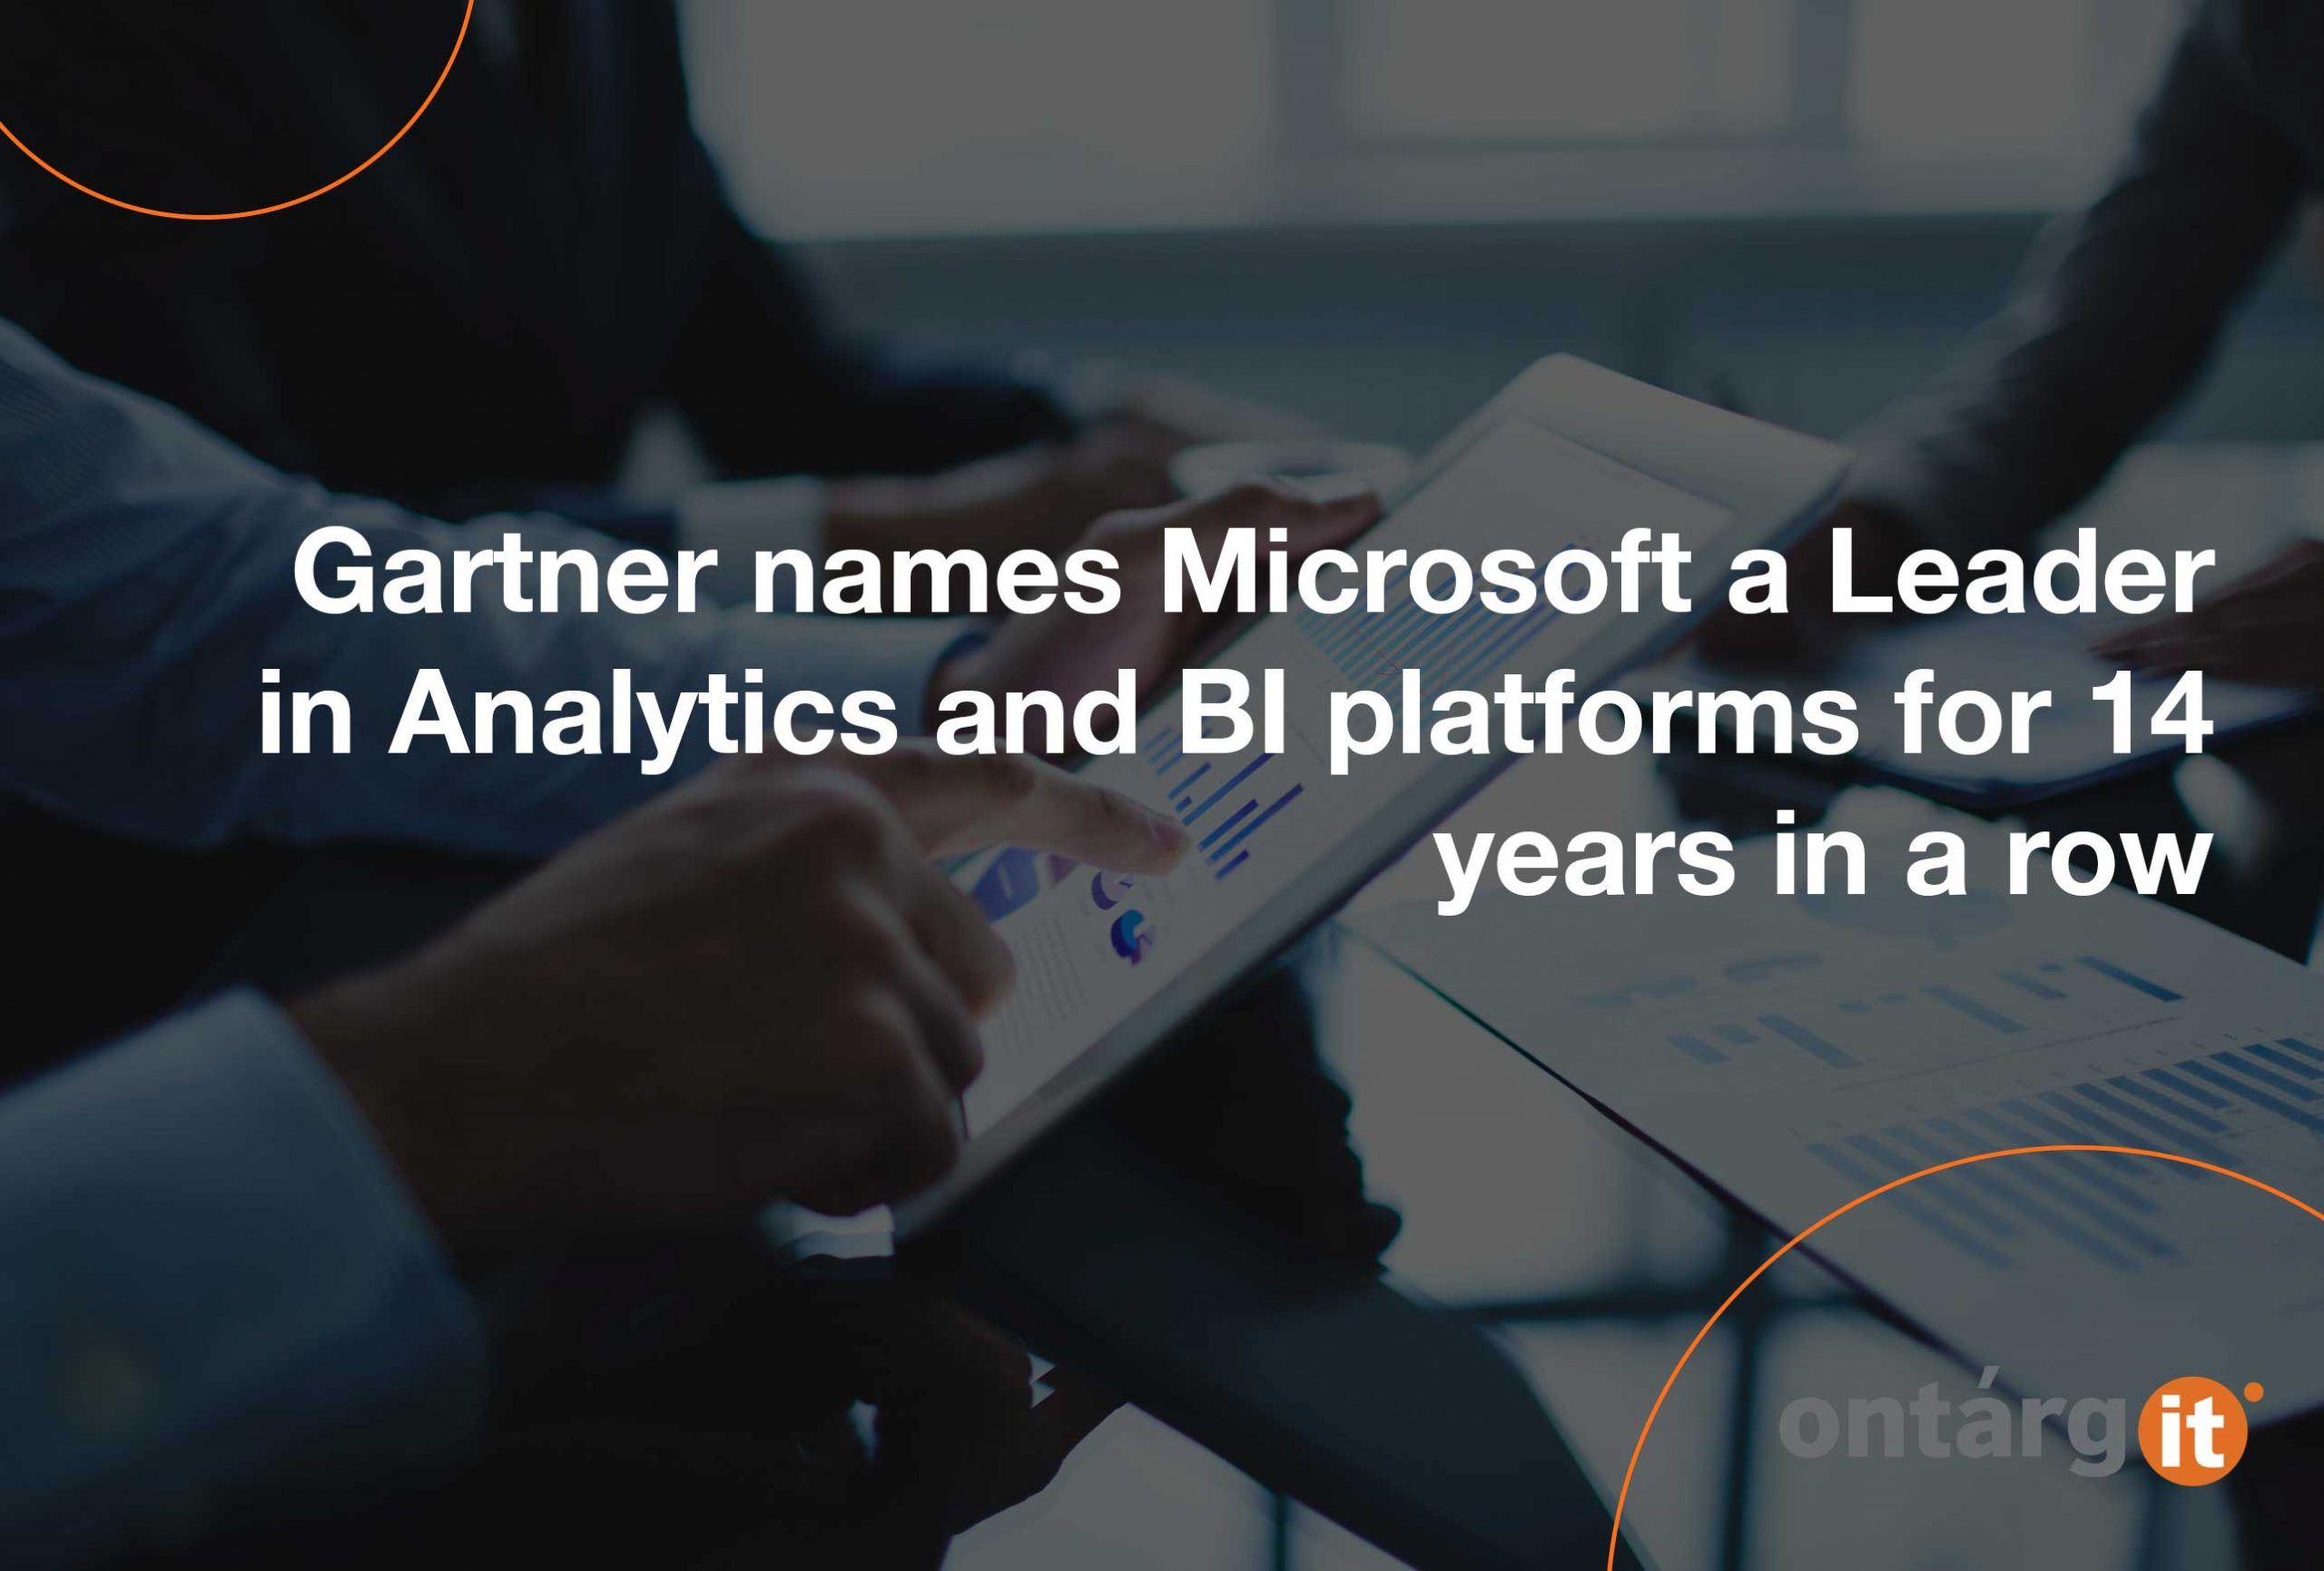 Gartner-names-Microsoft-a-Leader-in-Analytics-and-BI-platforms-for-14-years-in-a-row